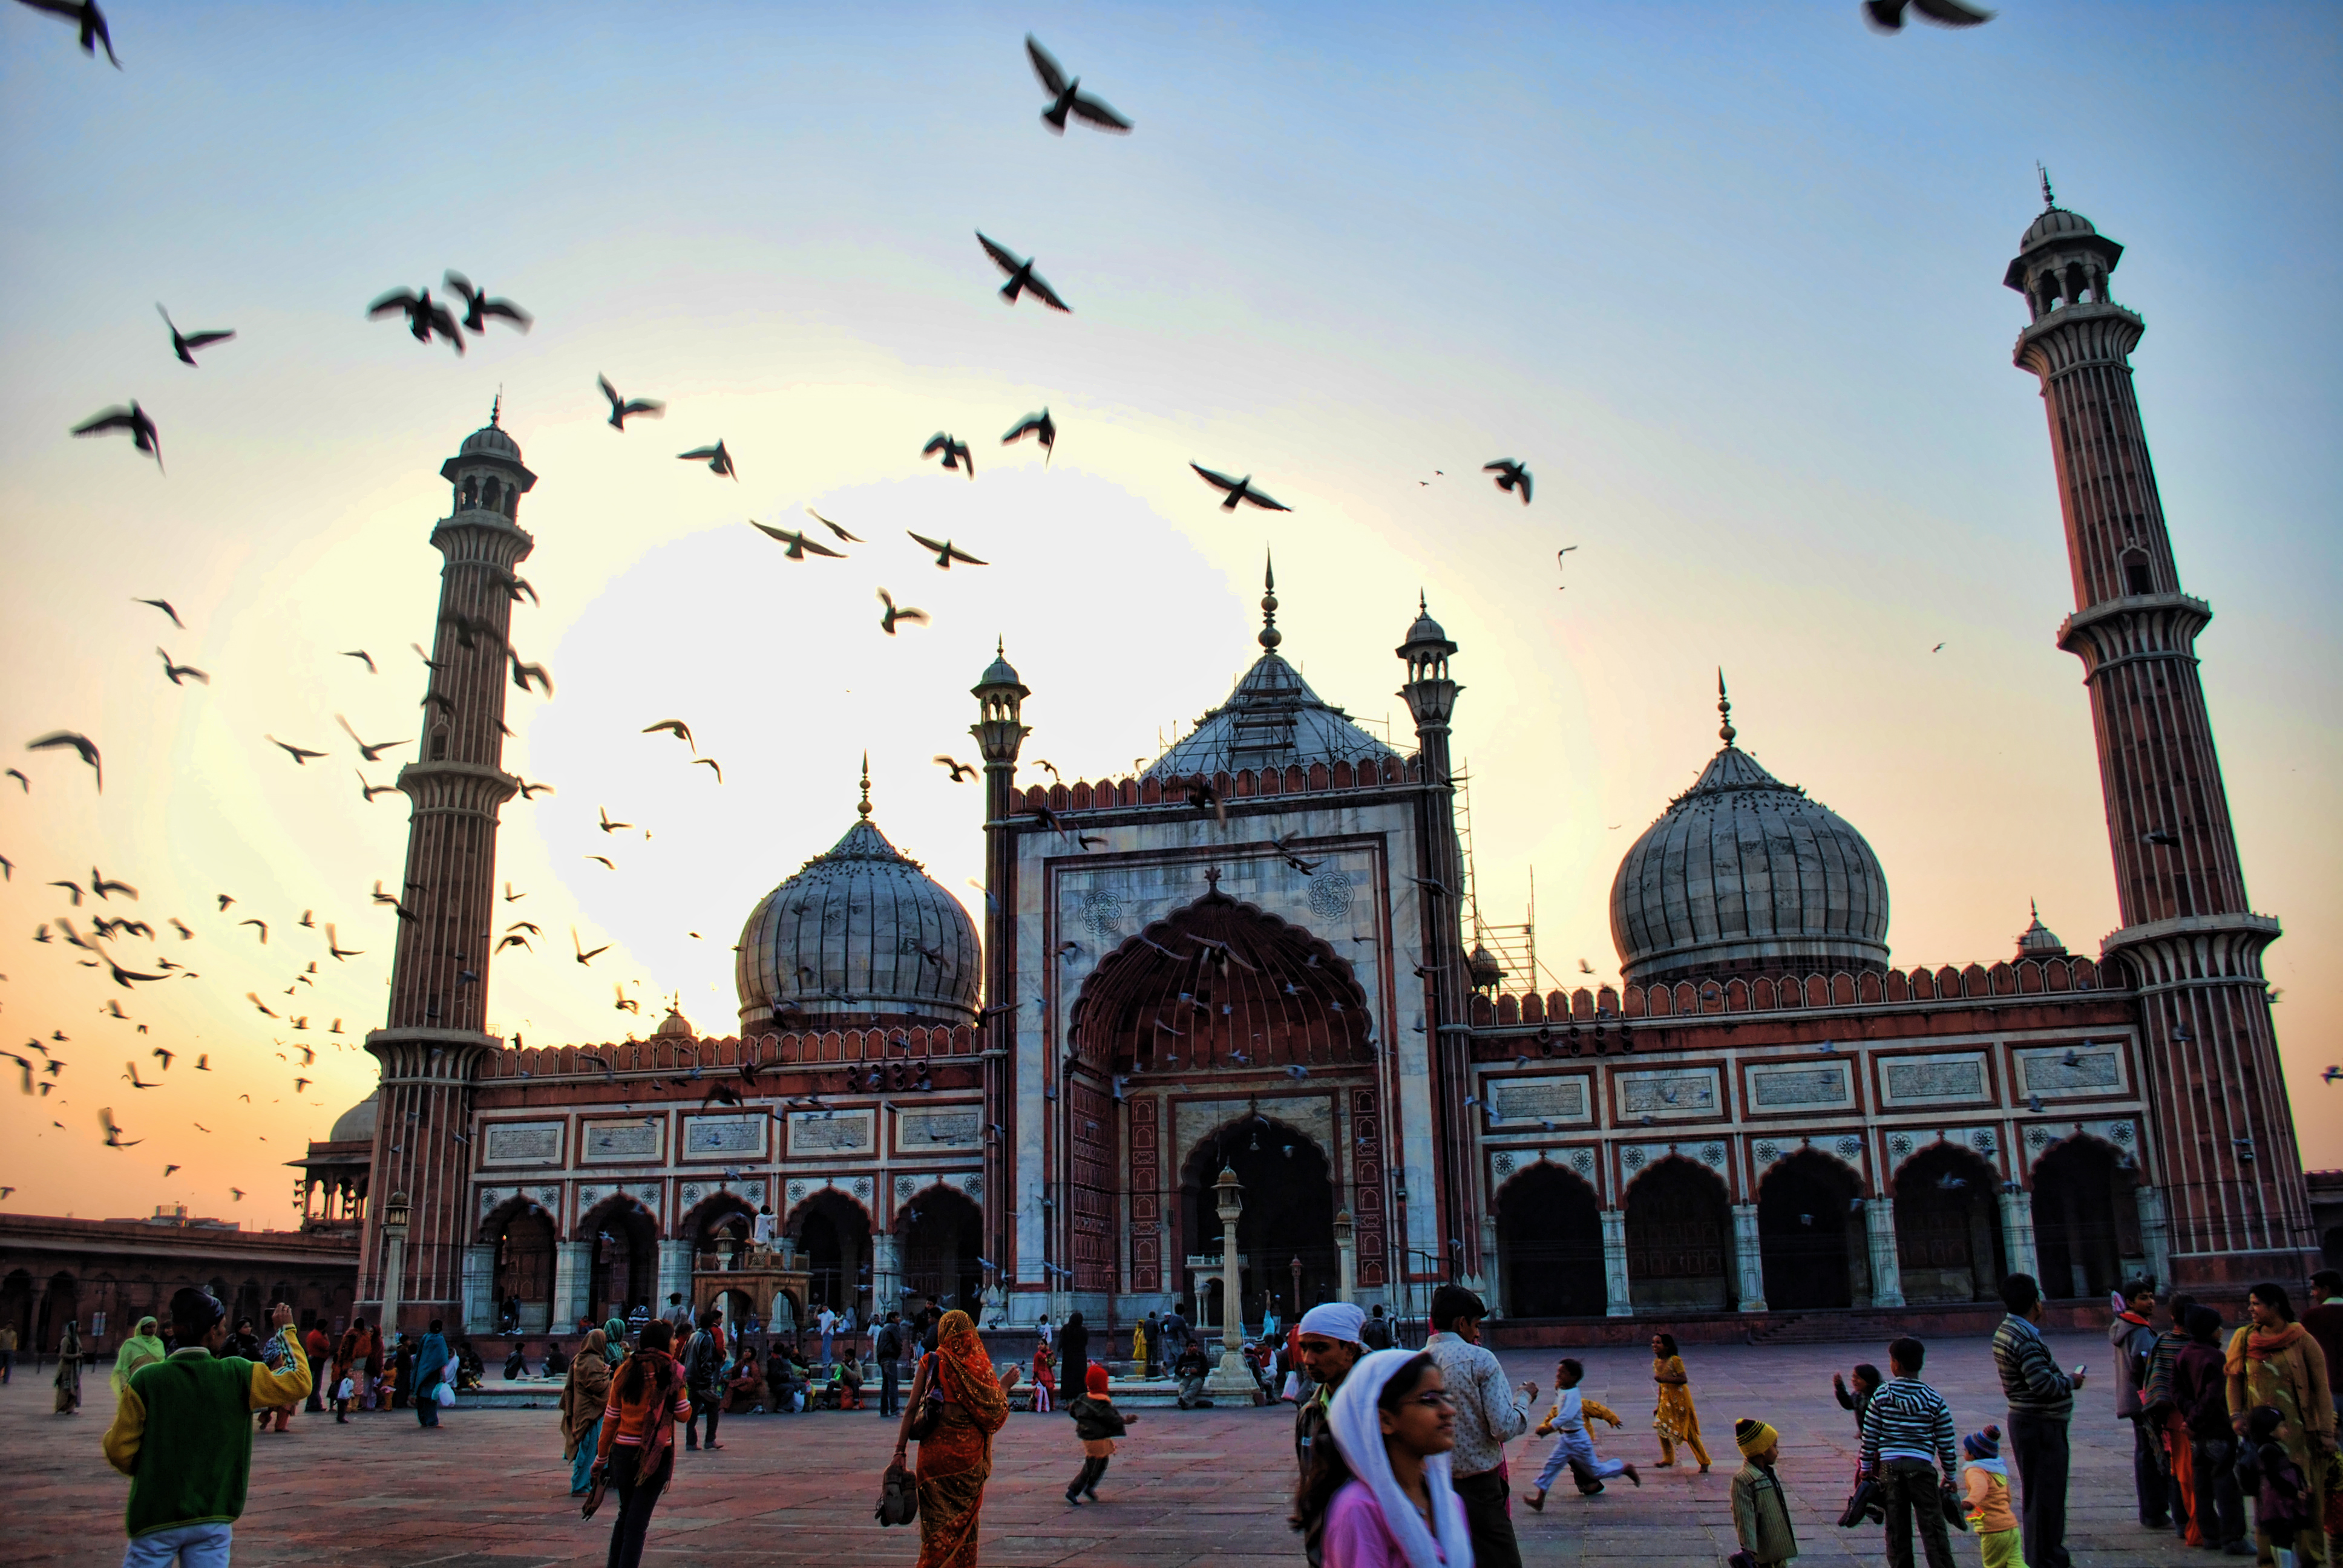 10 Holy places in India worth a visit